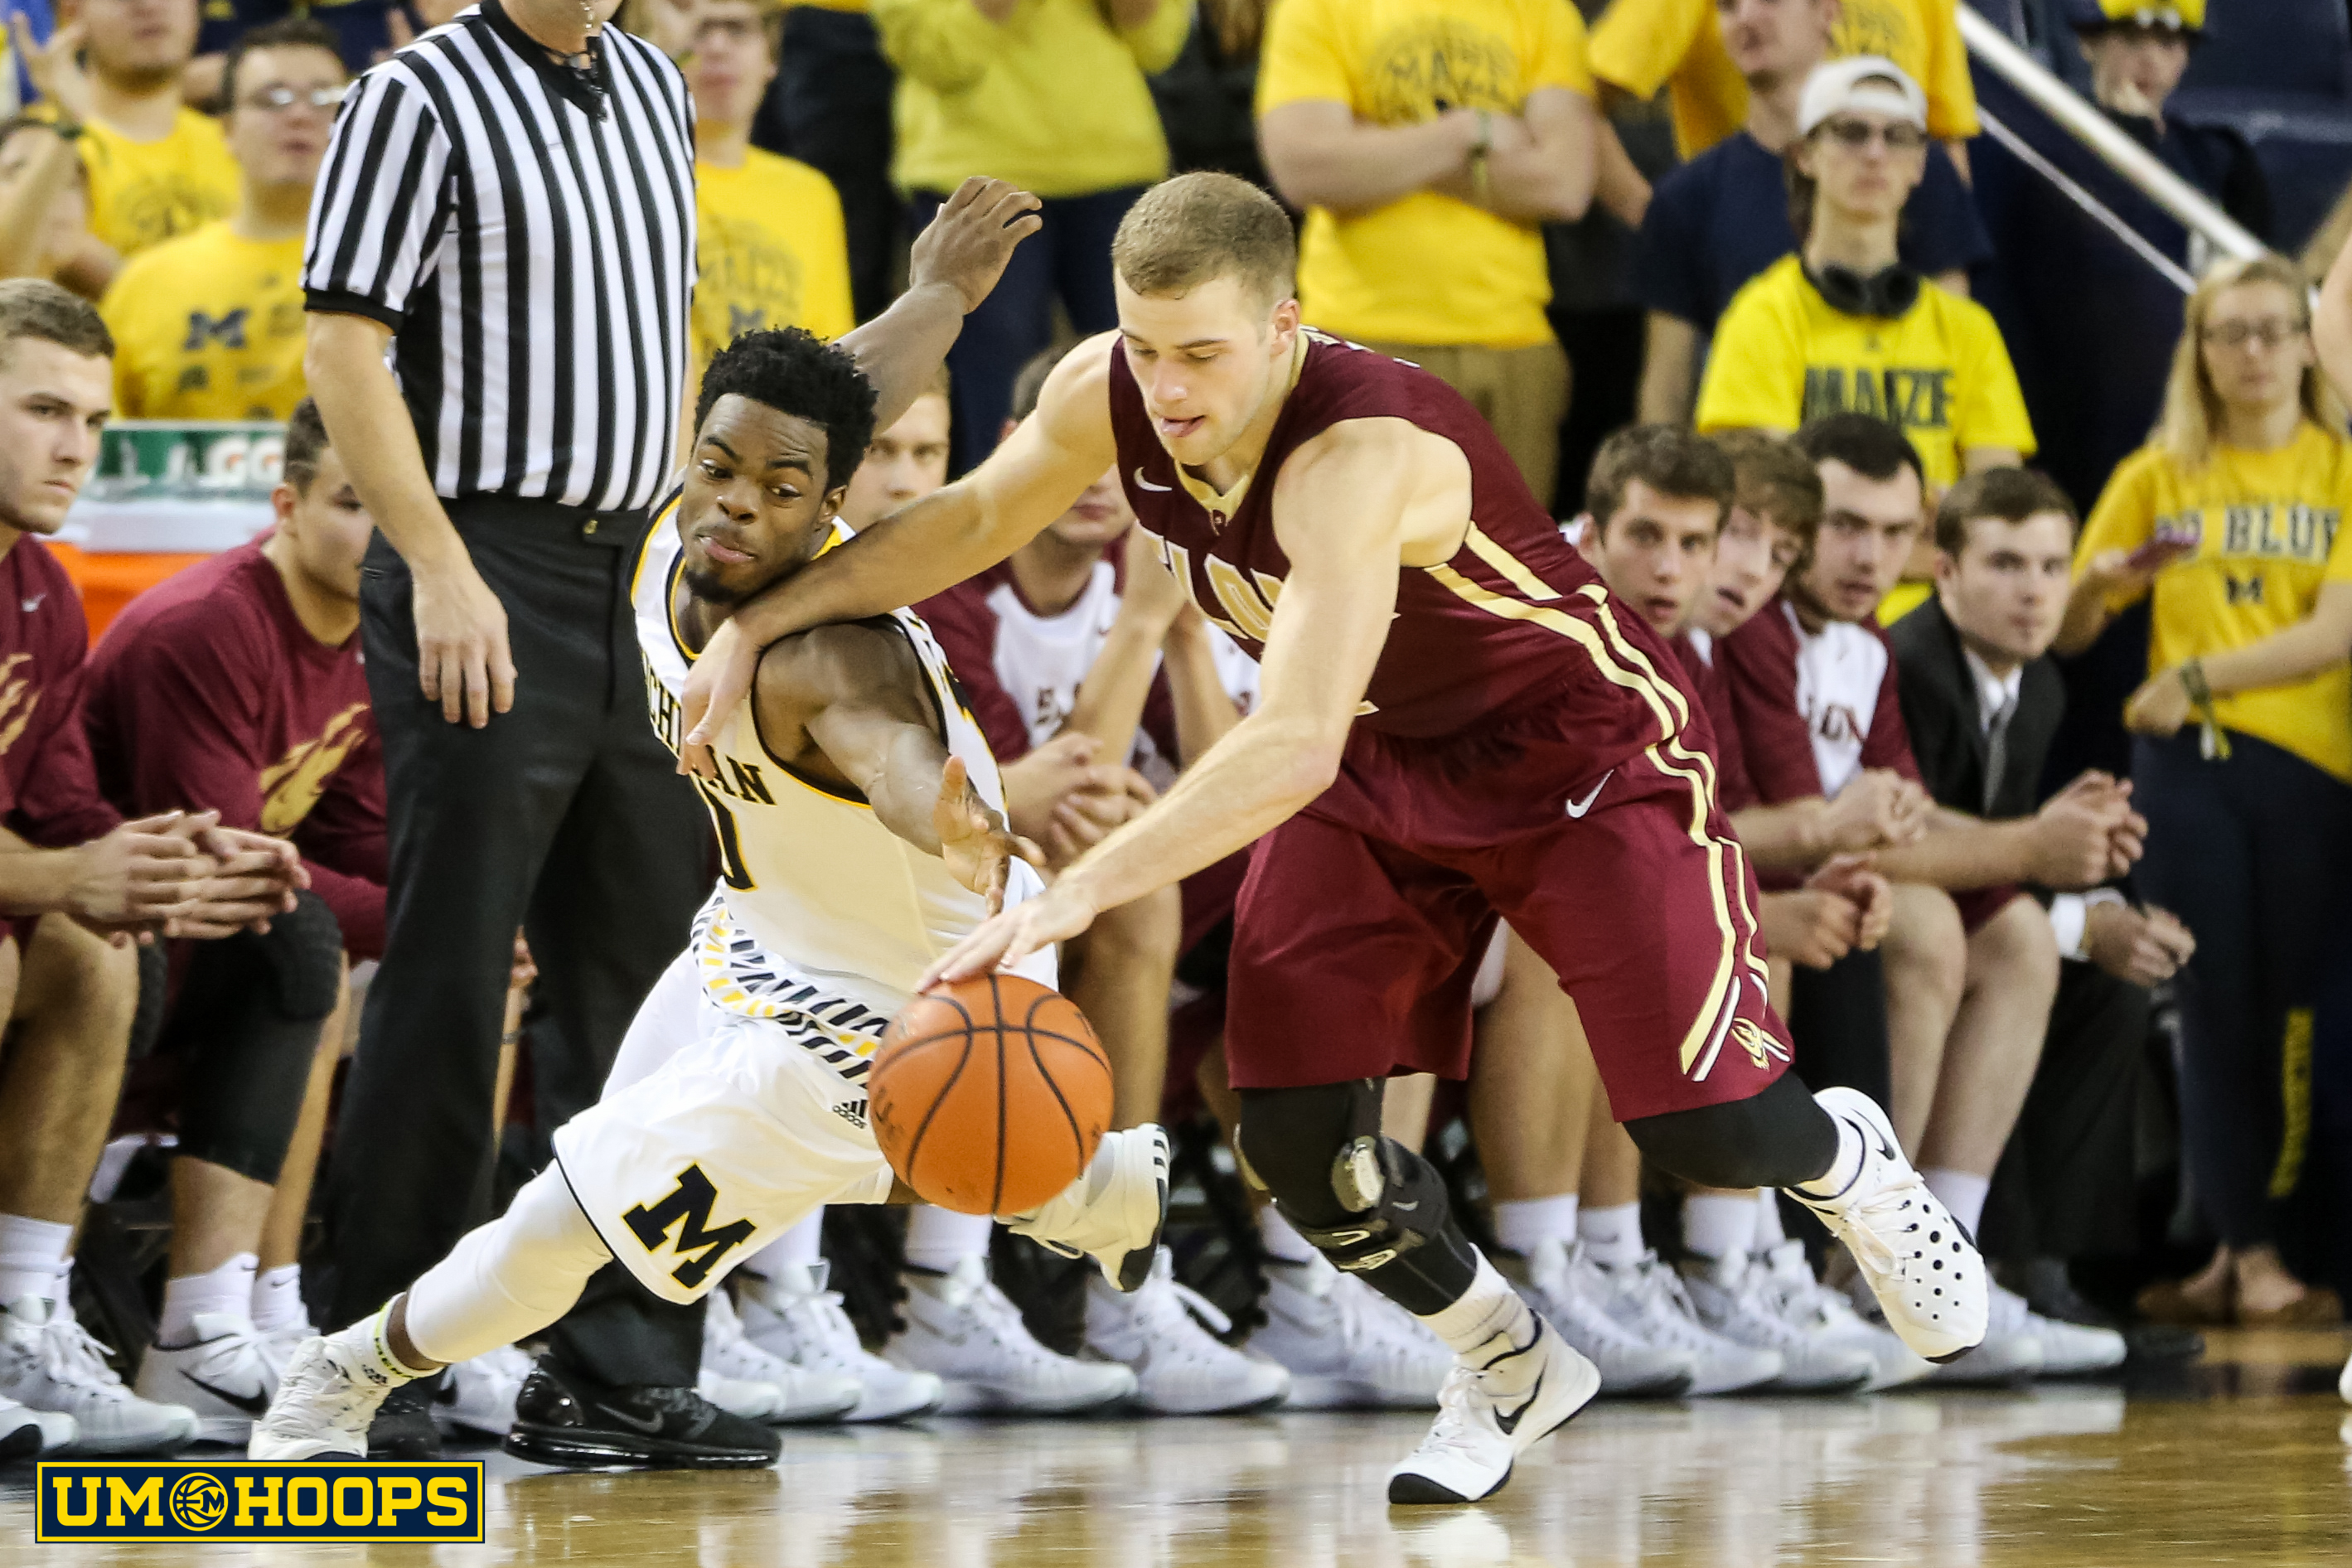 Michigan 88, Elon 68-13